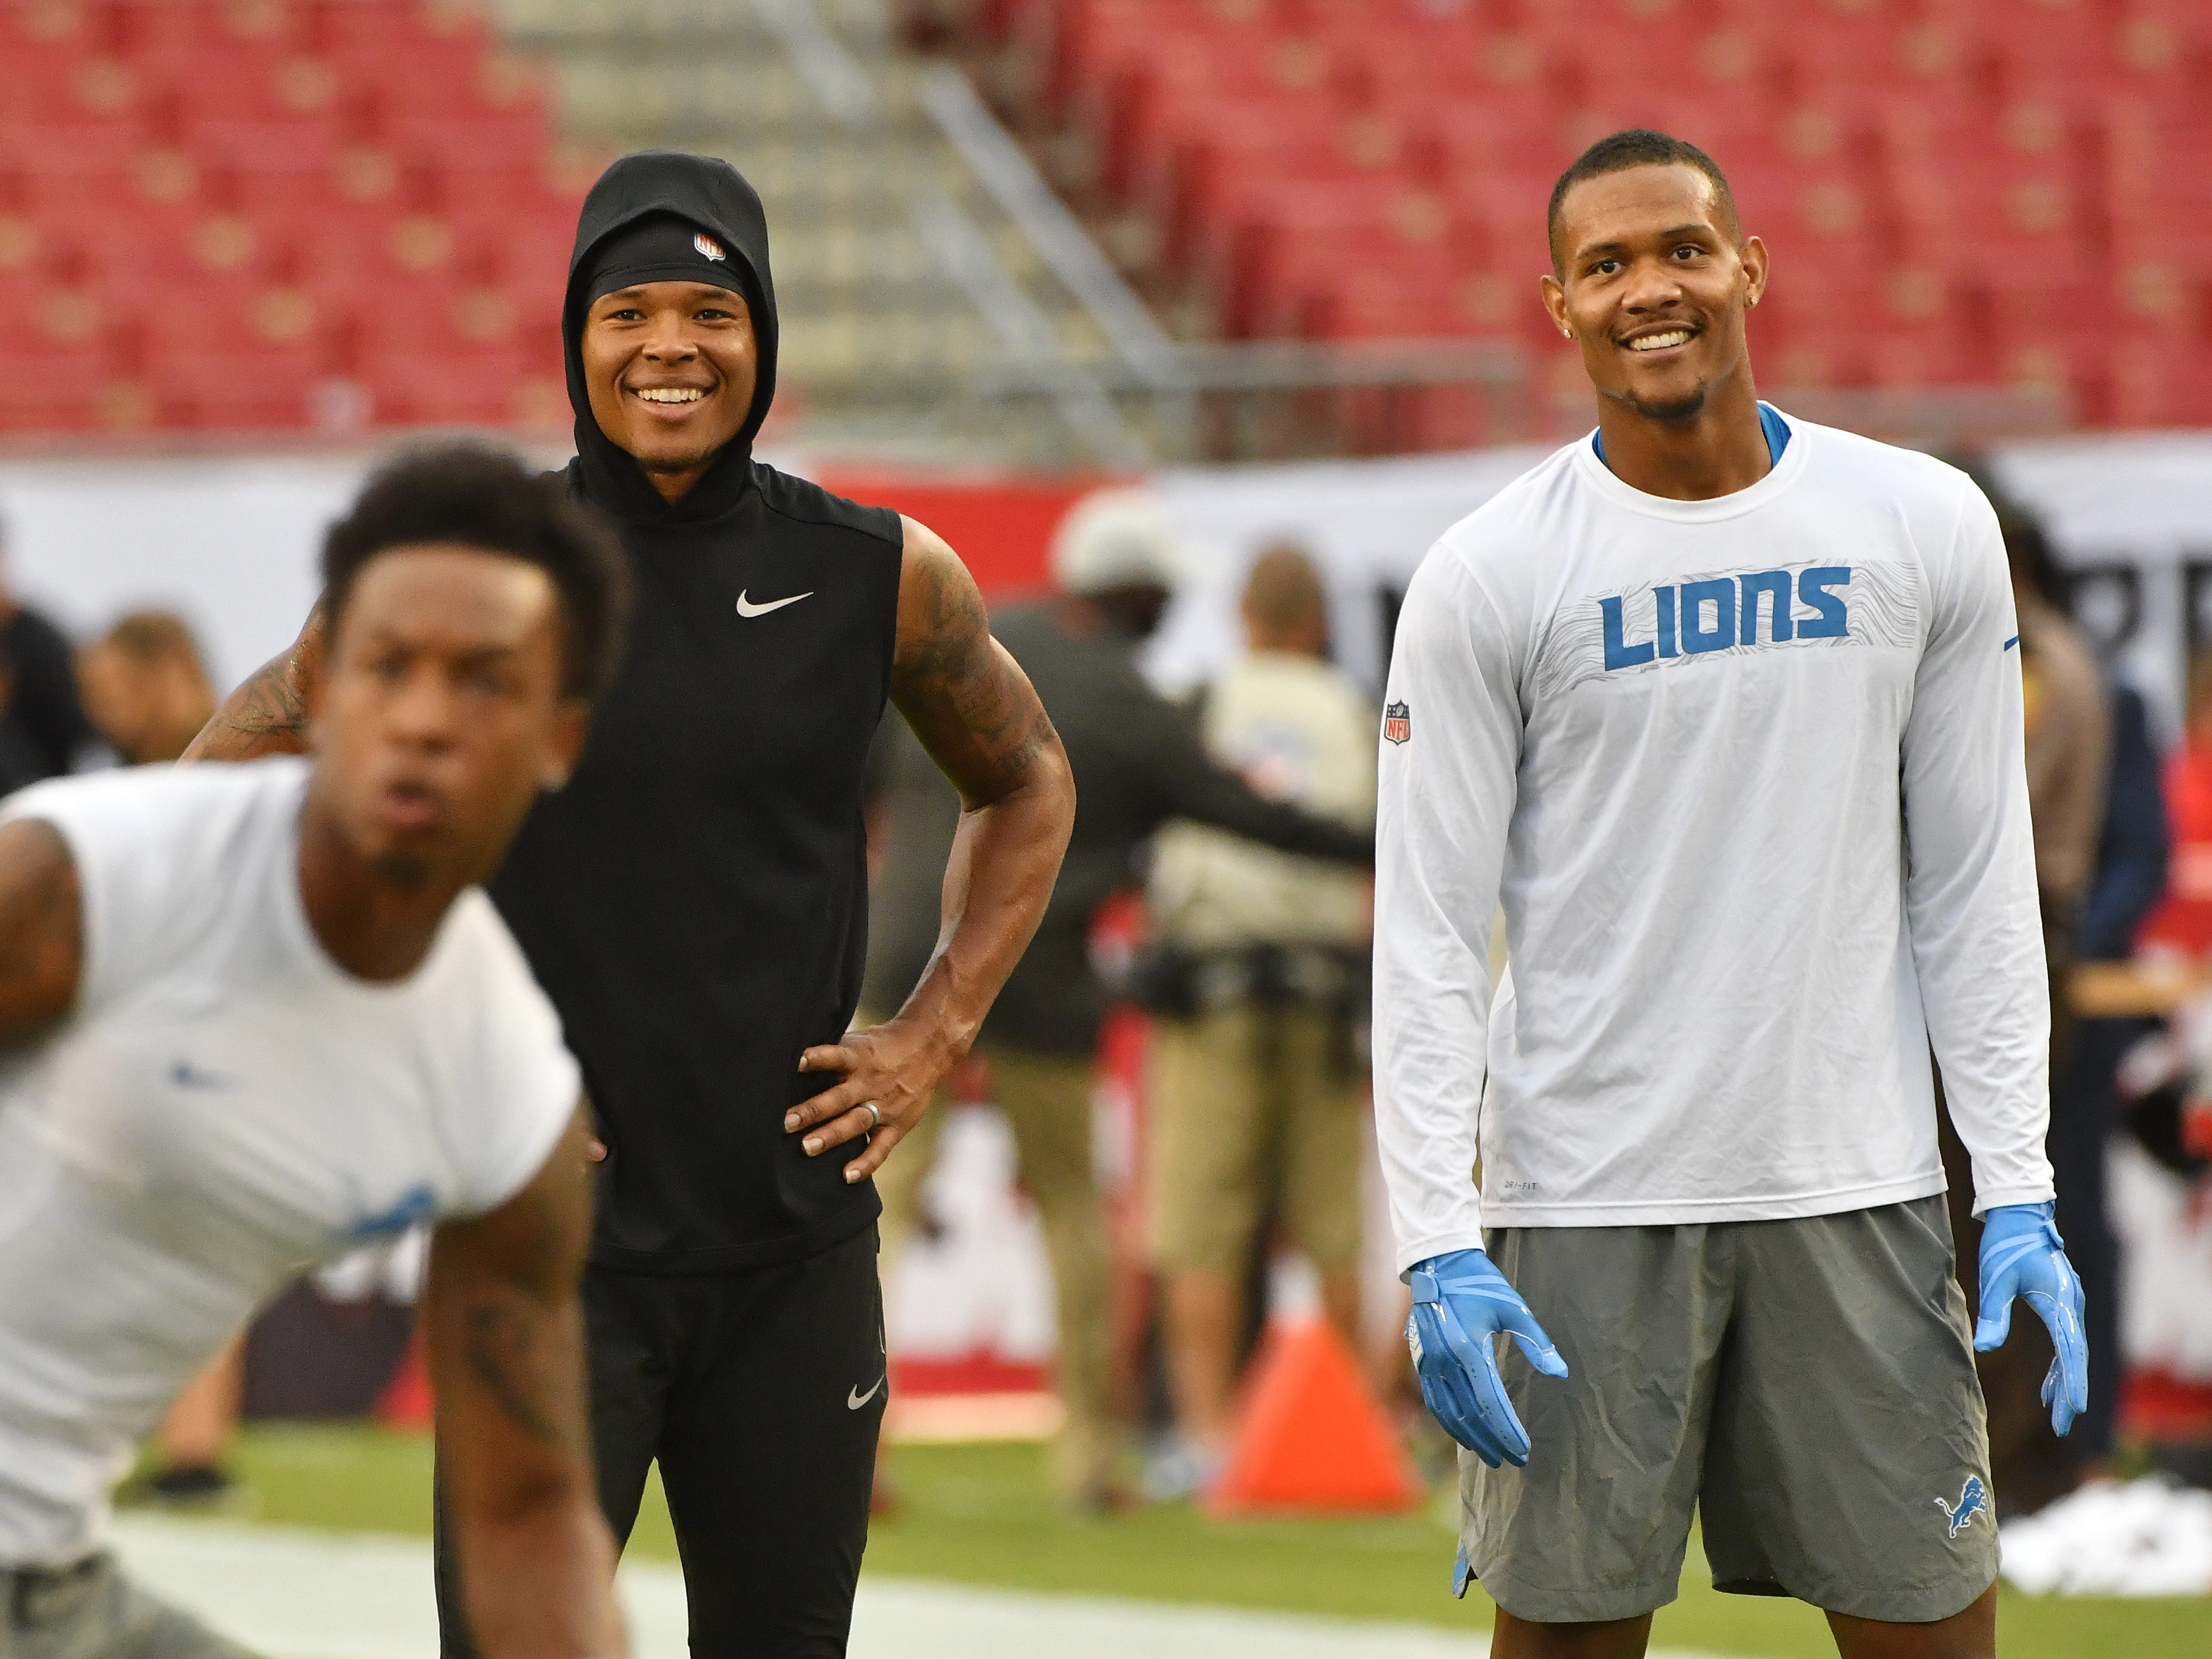 Lions wide receivers Marvin Jones Jr. and Kenny Golladay share a laugh during warmups.